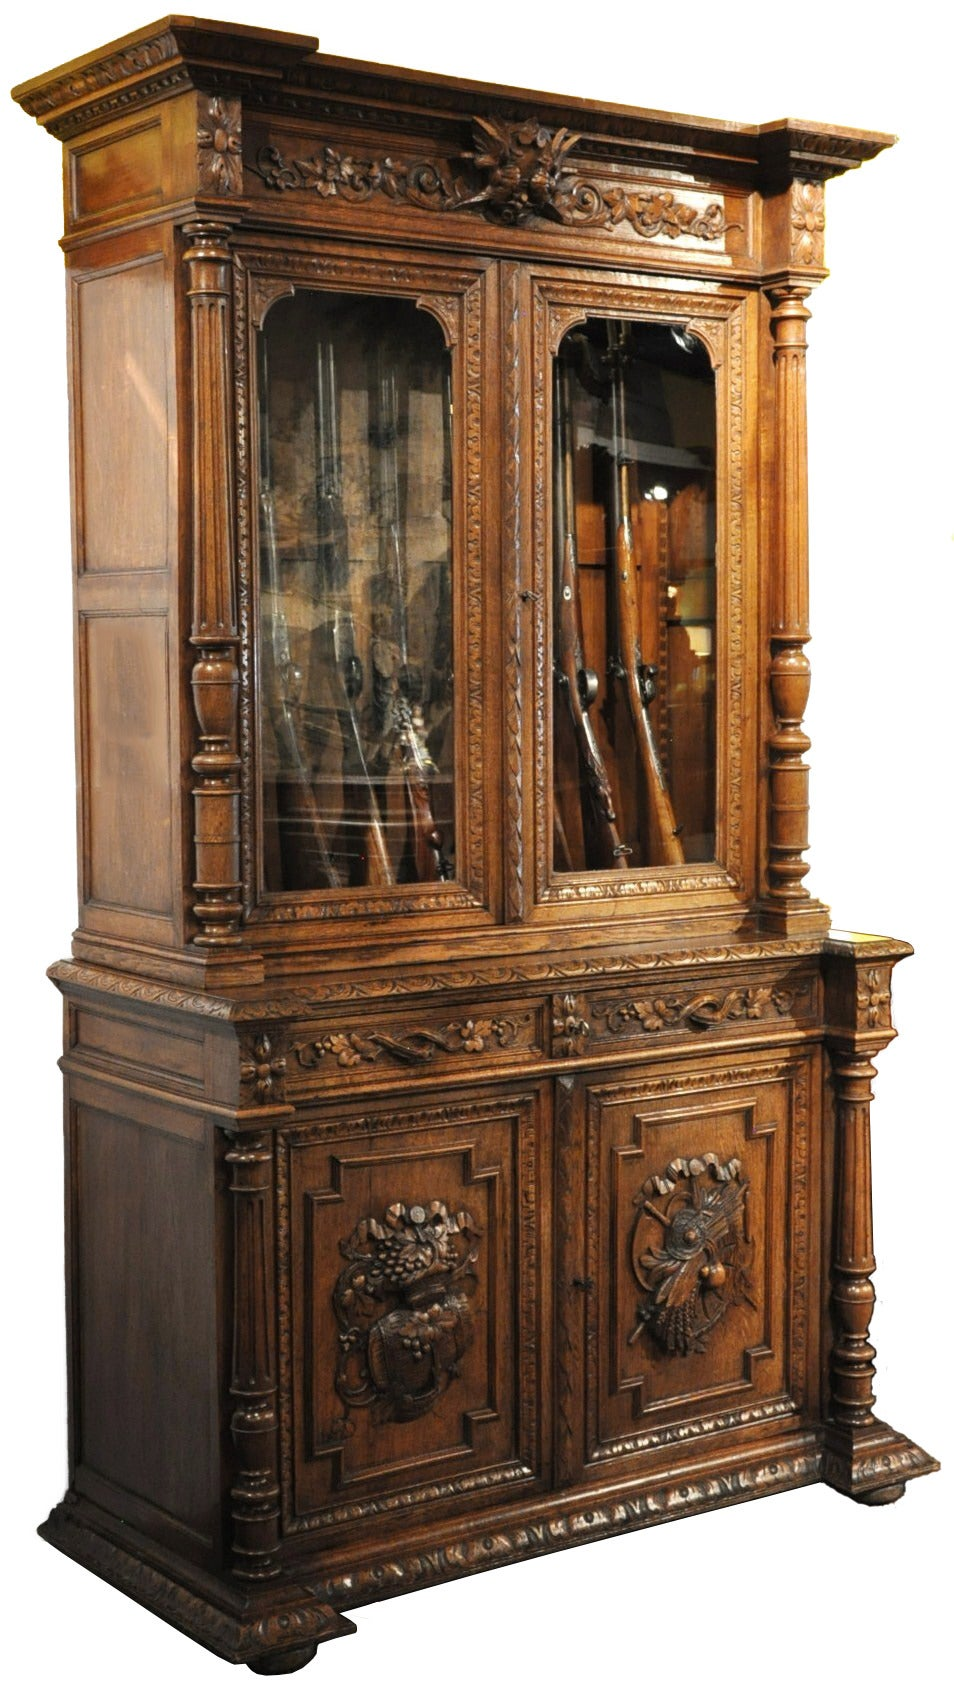 19th C. Carved Gun Cabinet from Normandy 2 - 19th C. Carved Gun Cabinet From Normandy At 1stdibs